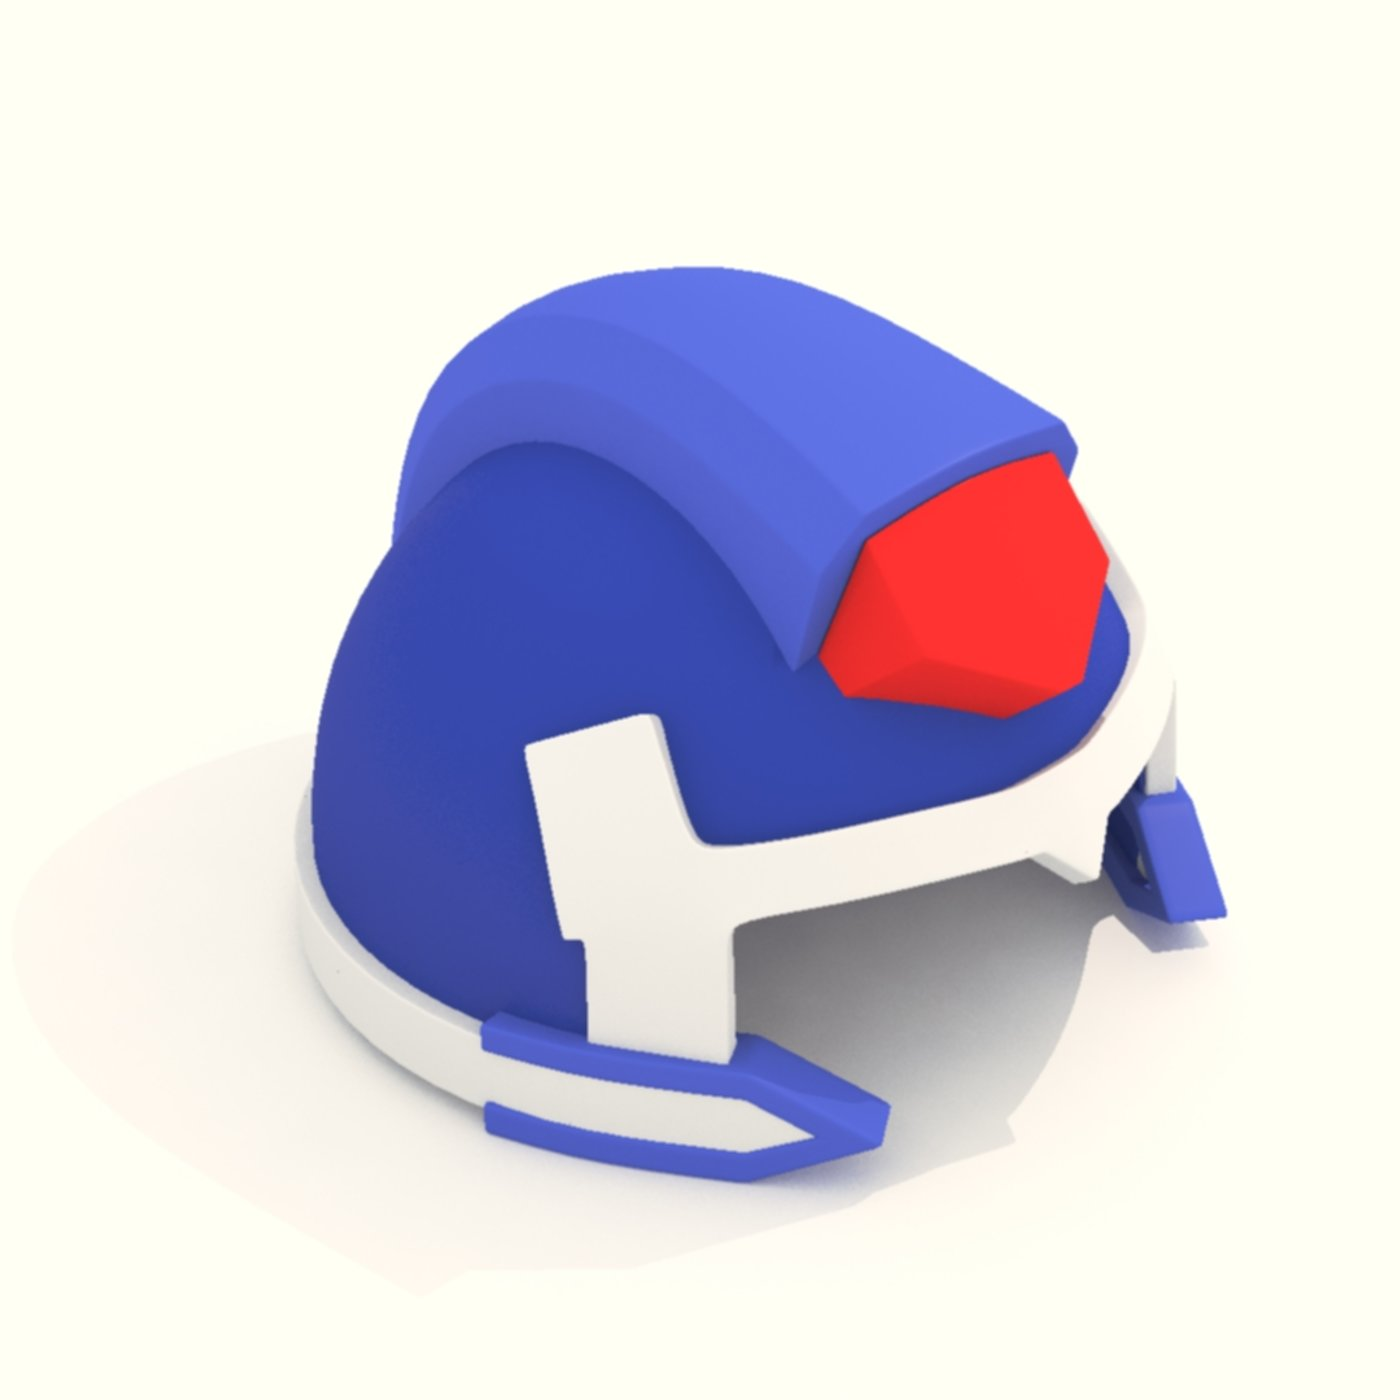 Cartoon Robot Helmet Model CRH5